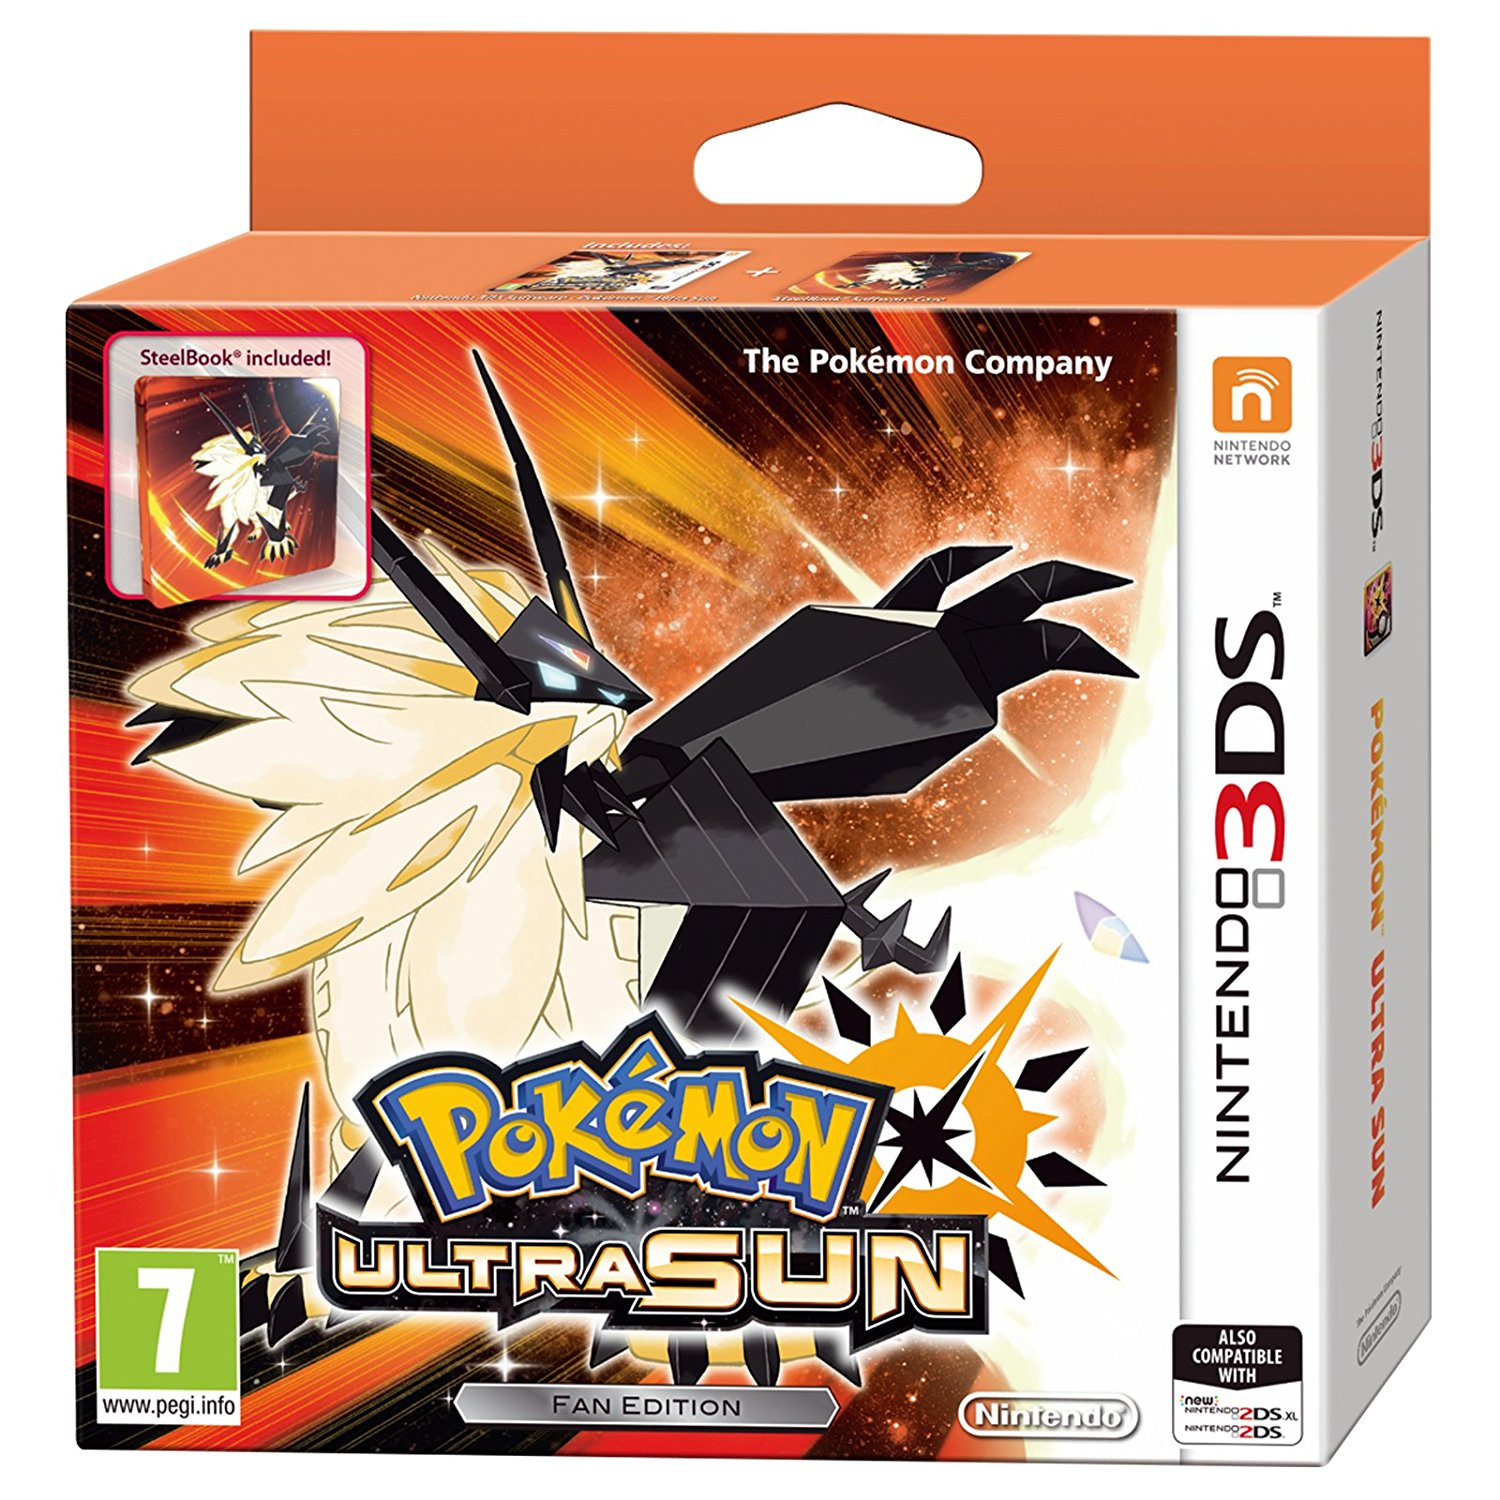 Pokémon Ultra Sun Steelbook Edition - 3DS